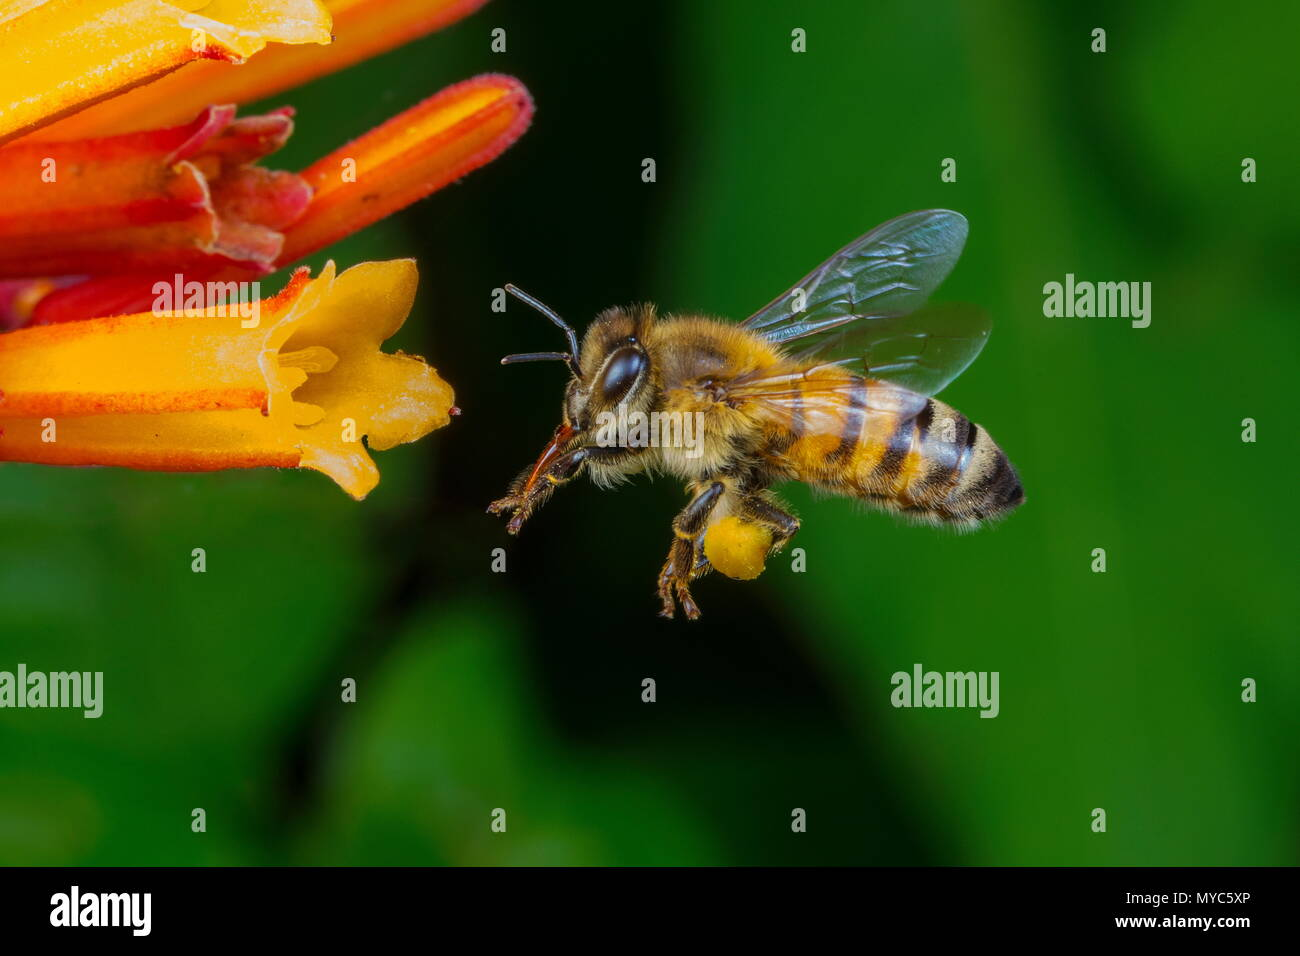 A honey bee, Apis mellifera, in flight with pollen sacks visible grazing on fire bush. - Stock Image